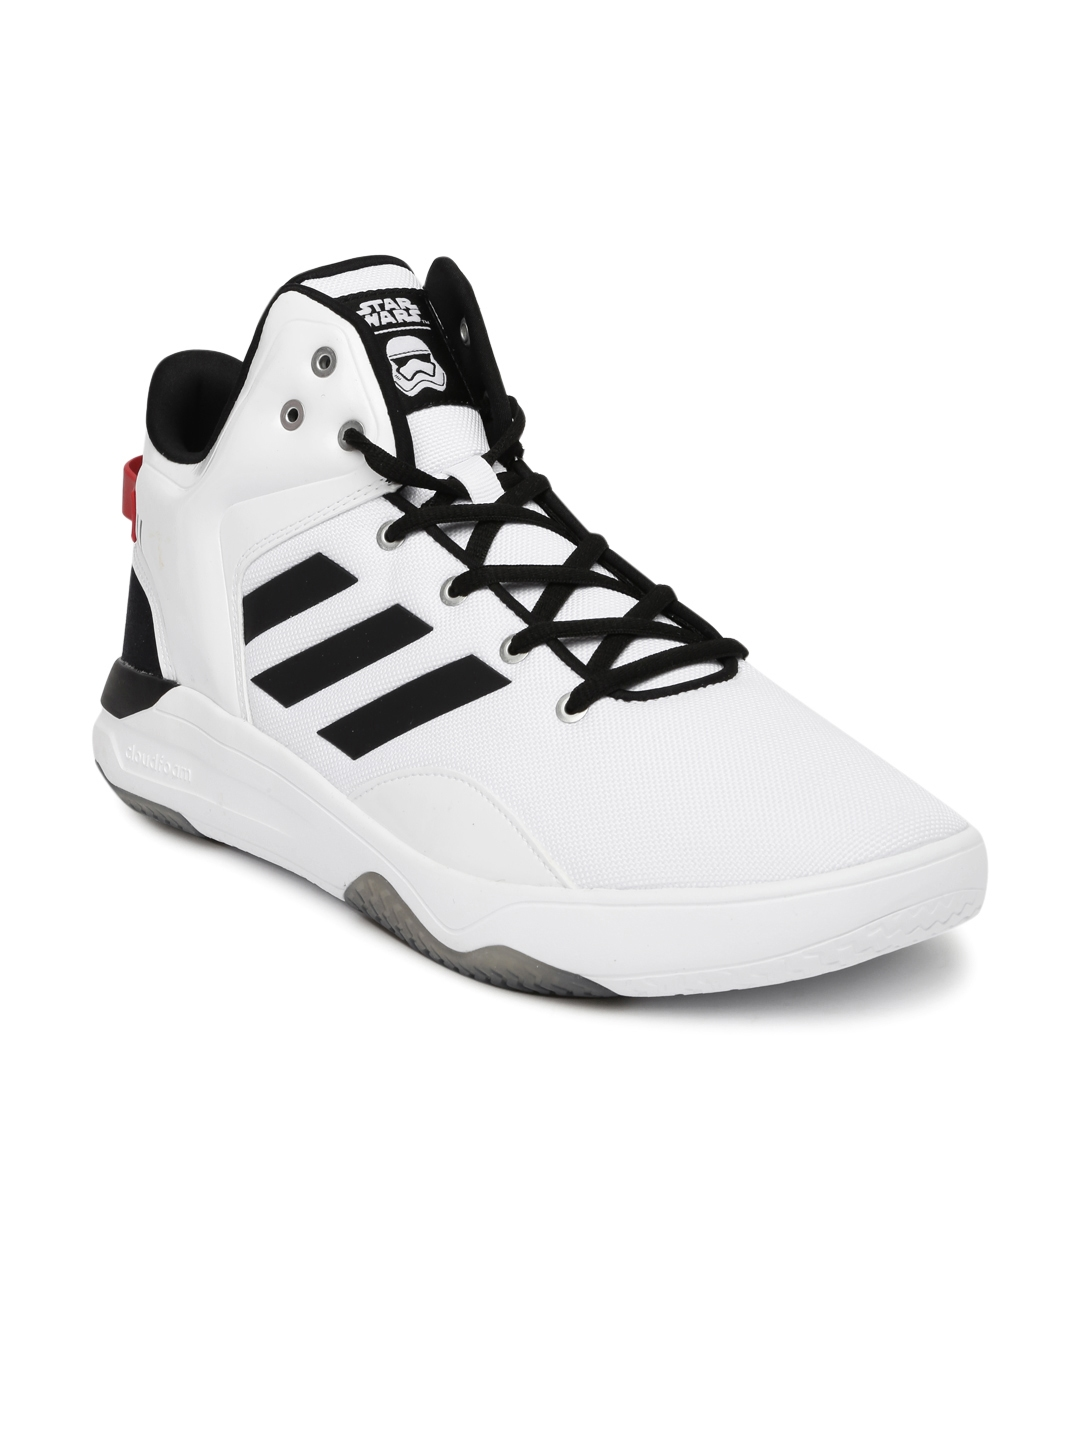 official photos 8e0bb 98c94 ADIDAS NEO Men White Solid Cloudfoam Revival Star War Mid-Top Sneakers